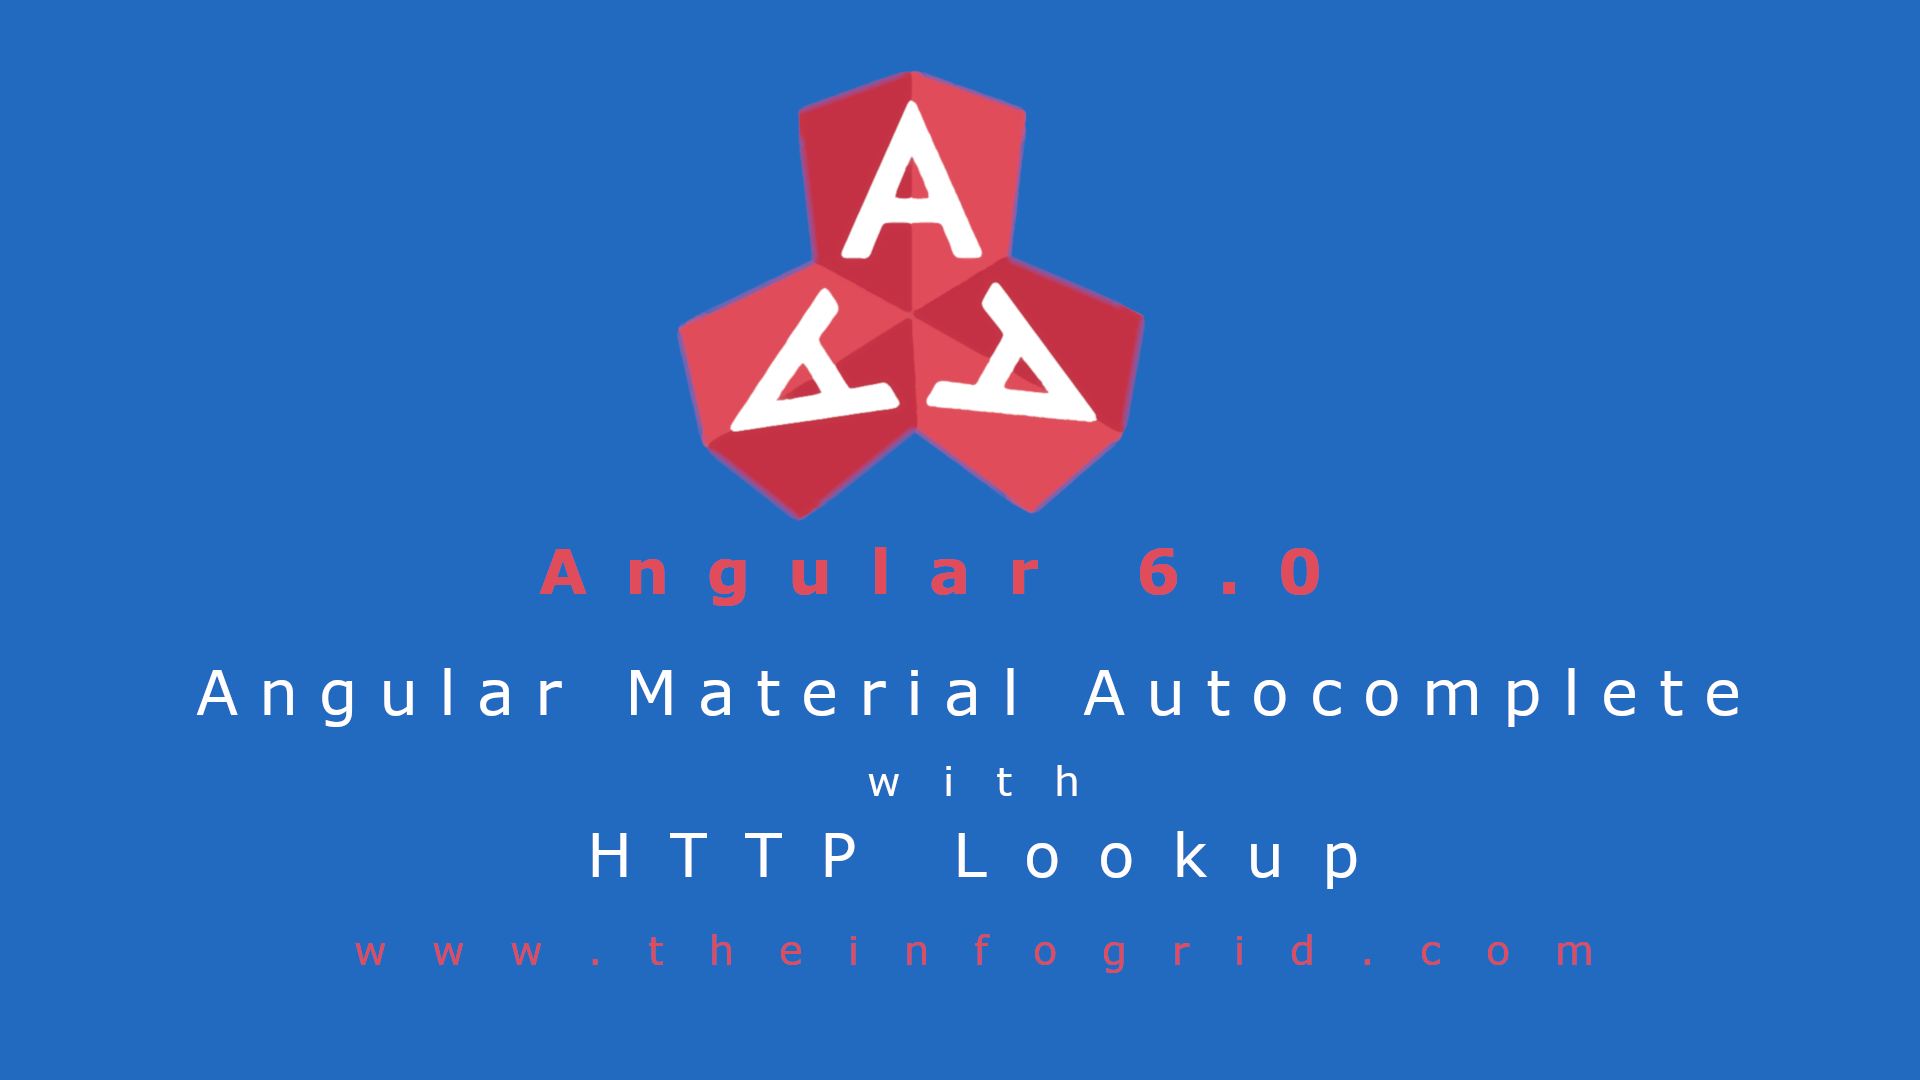 Angular Material Autocomplete with HTTP Lookup